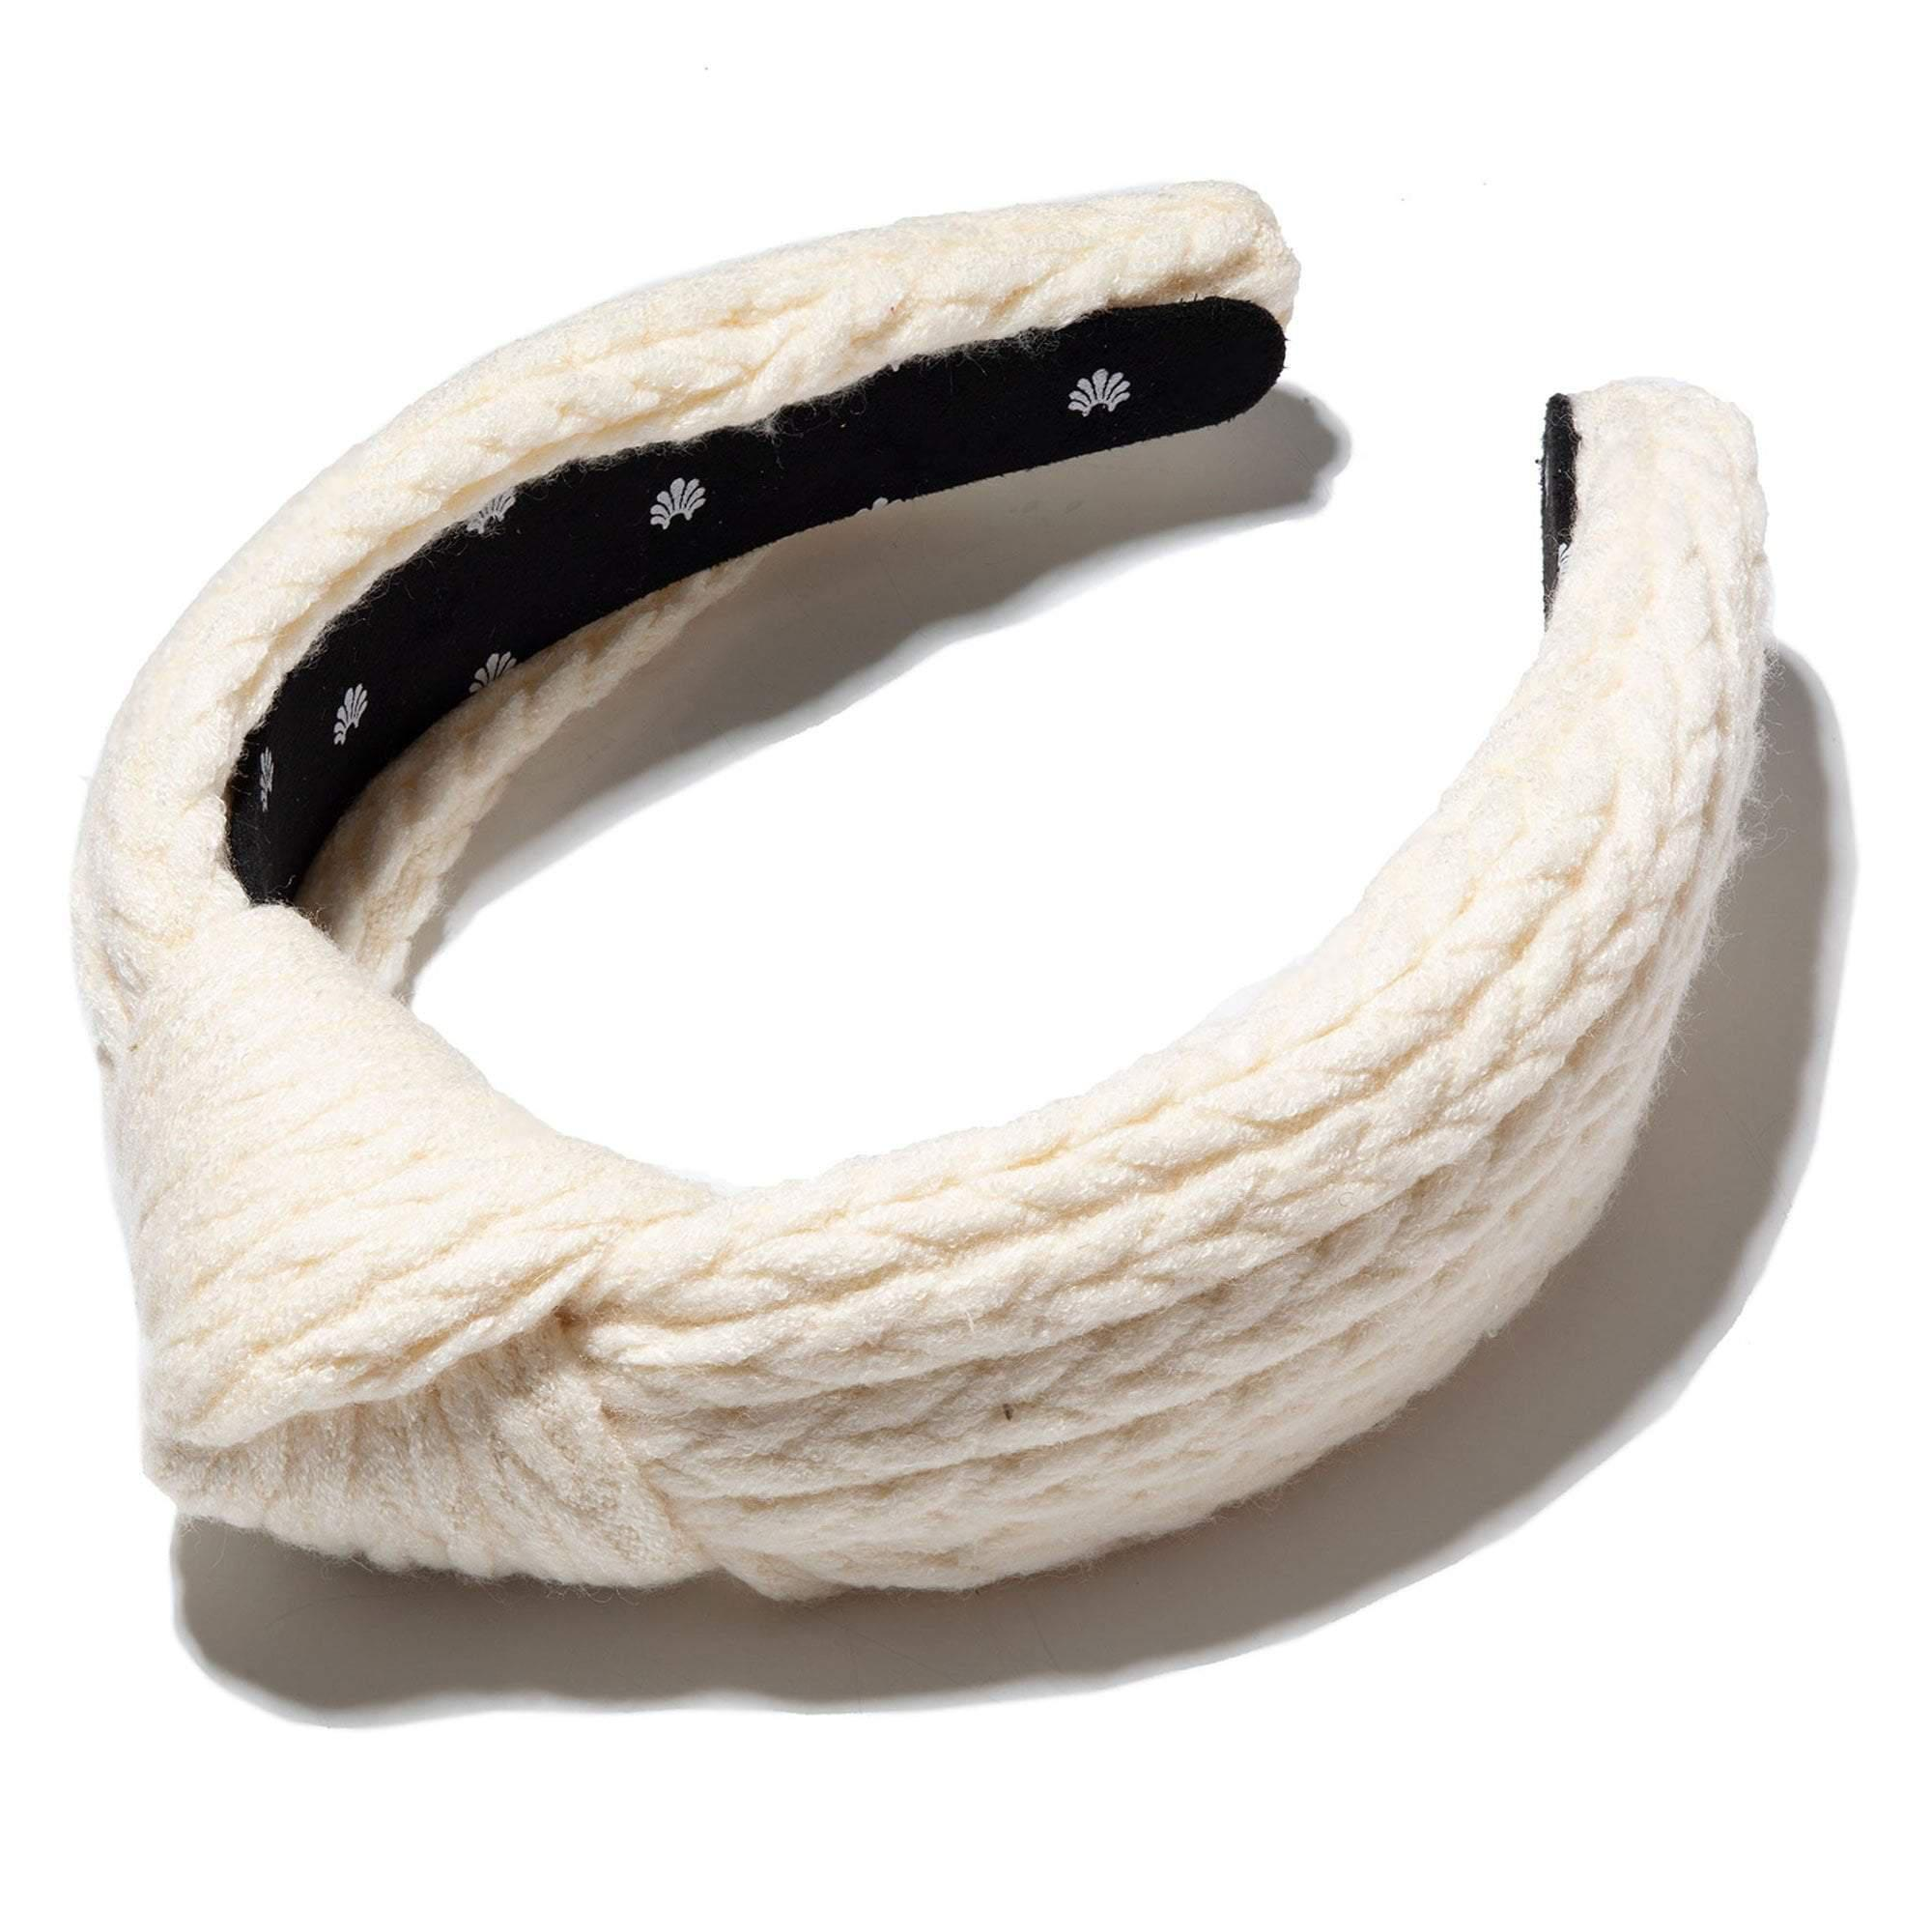 IVORY CABLE KNIT KNOTTED HEADBAND